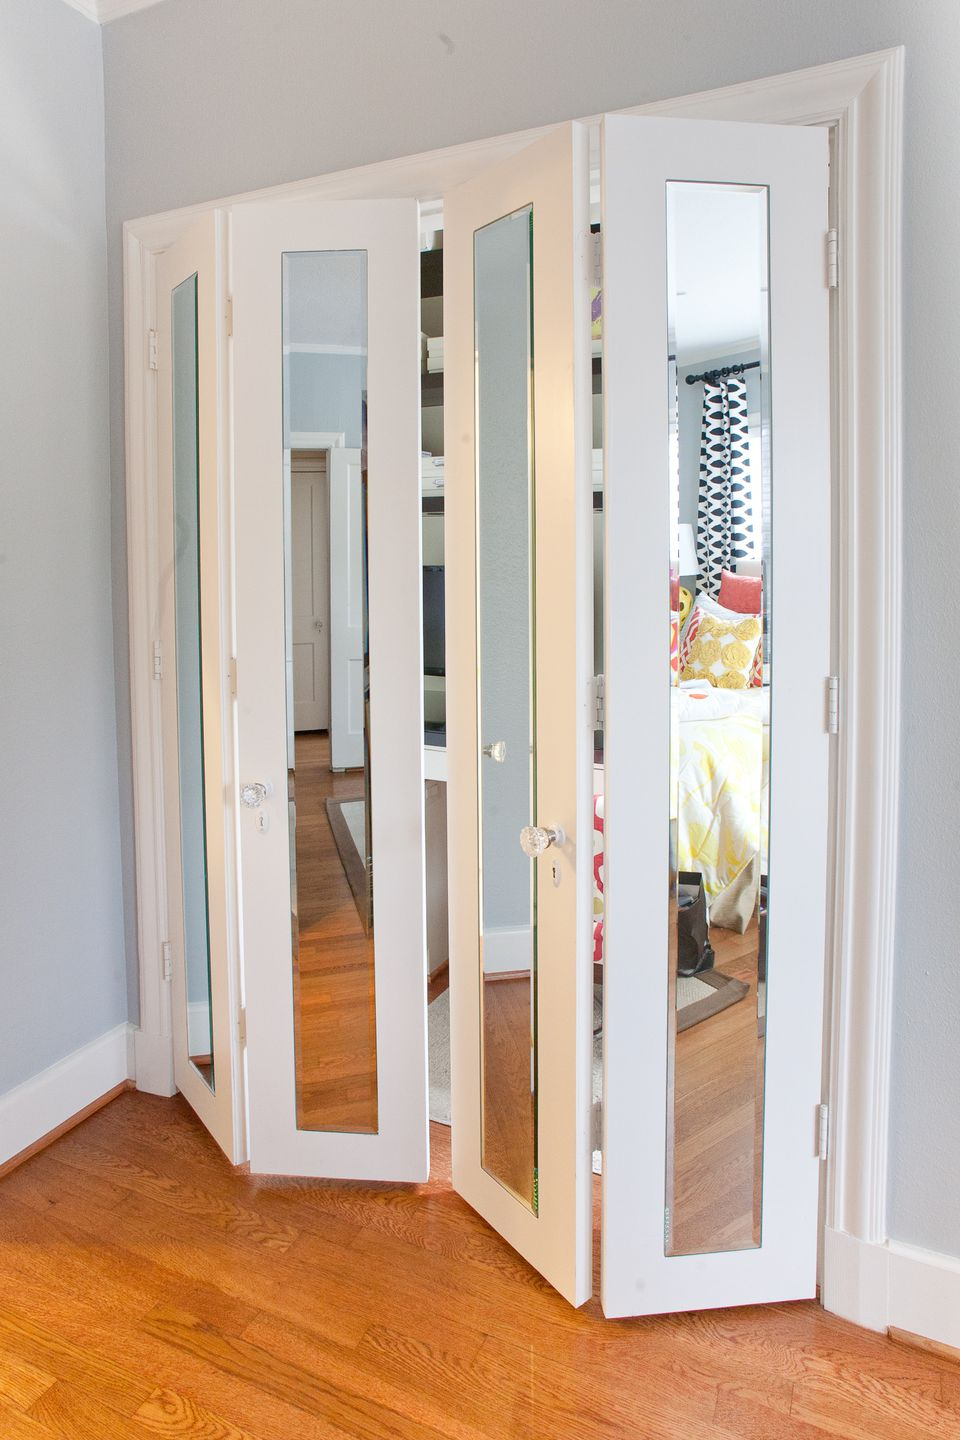 Mirror on Closet Doors.